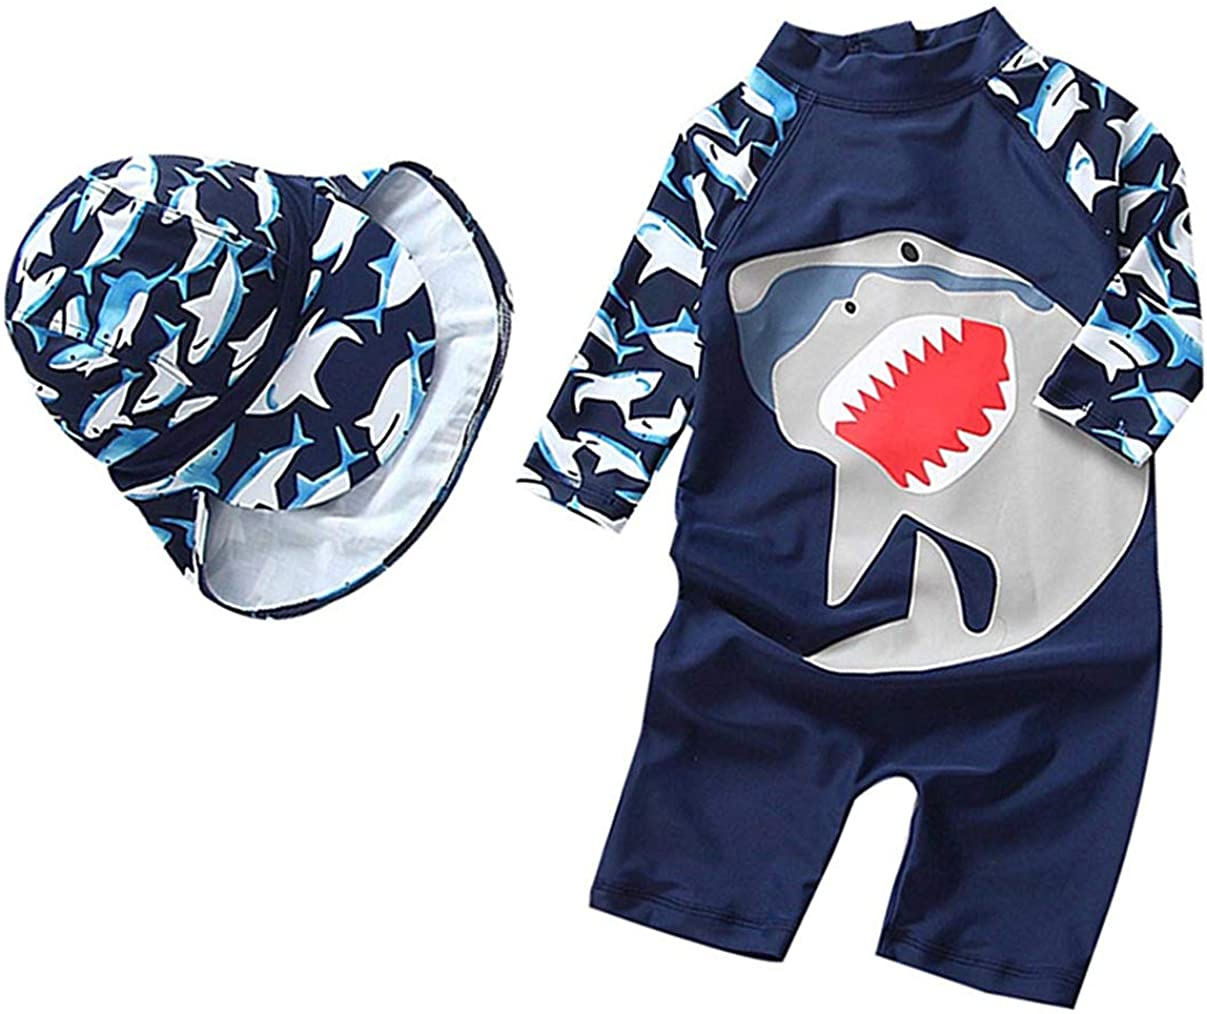 HUAANIUE Baby//Toddler Boy Swimsuit Rashguard Swimwear Long Sleeve One-Piece Car 1-2 T